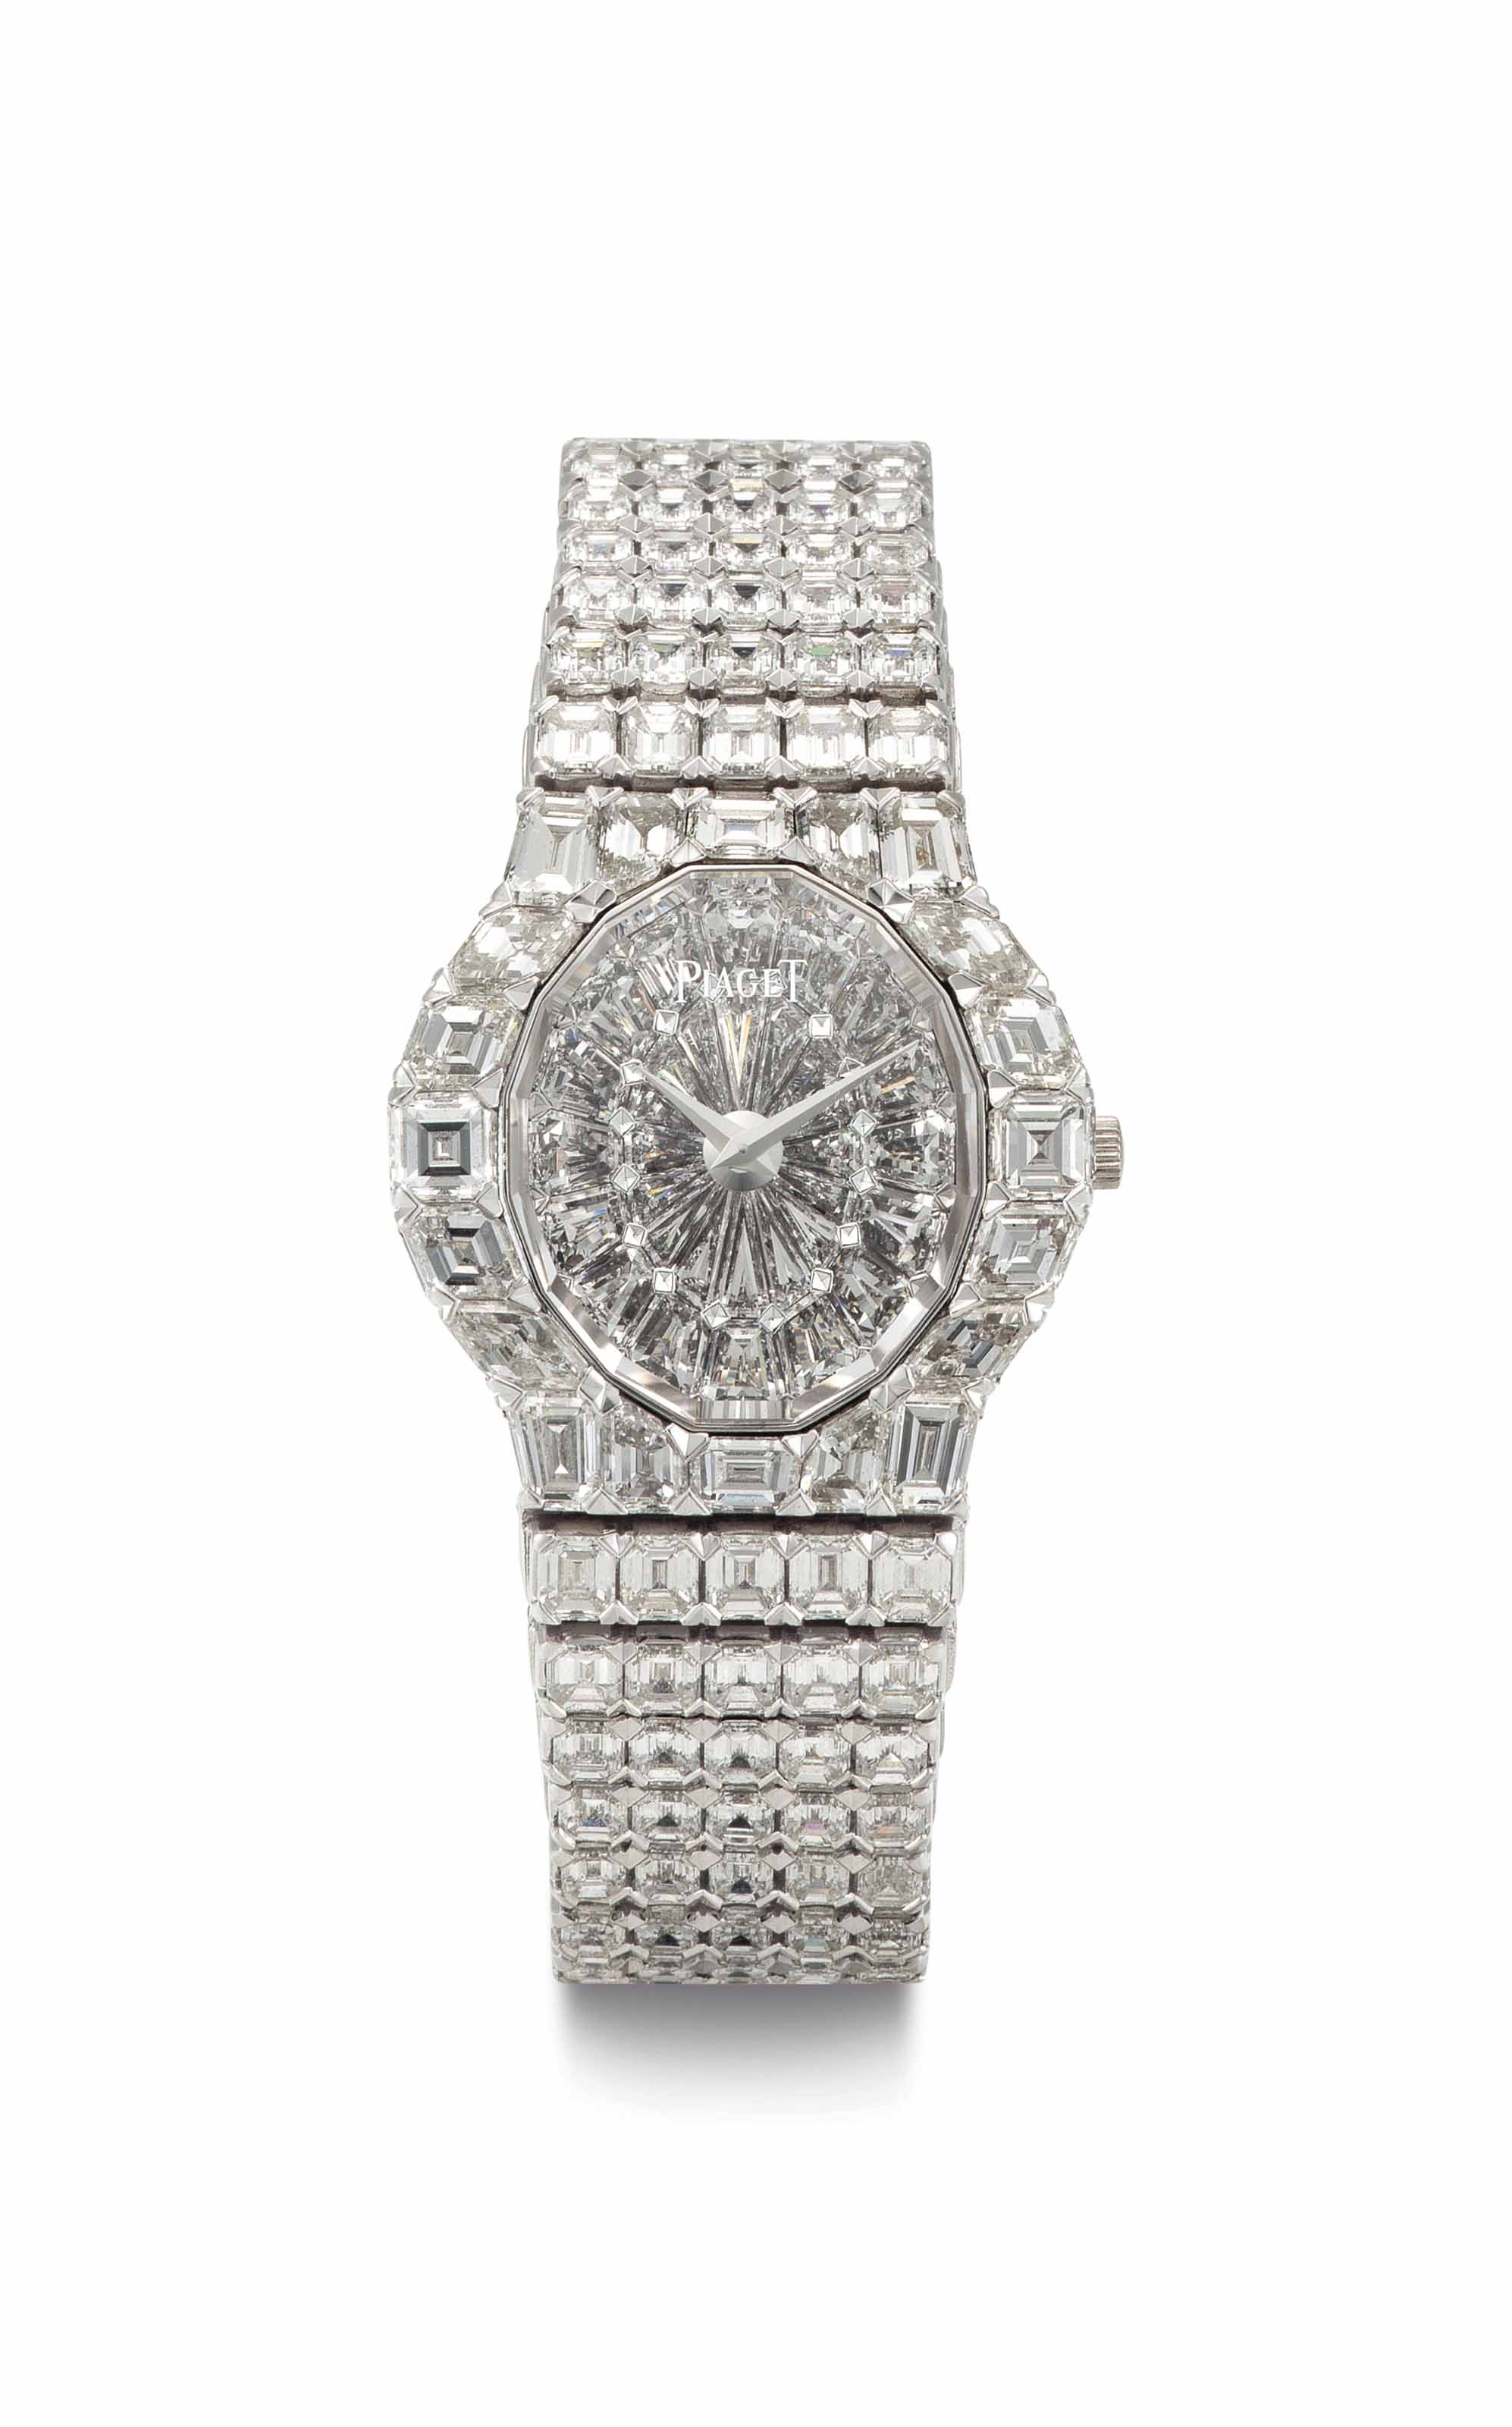 Piaget. An Extremely Fine and Rare 18k White Gold and Diamond-Set Bracelet Watch